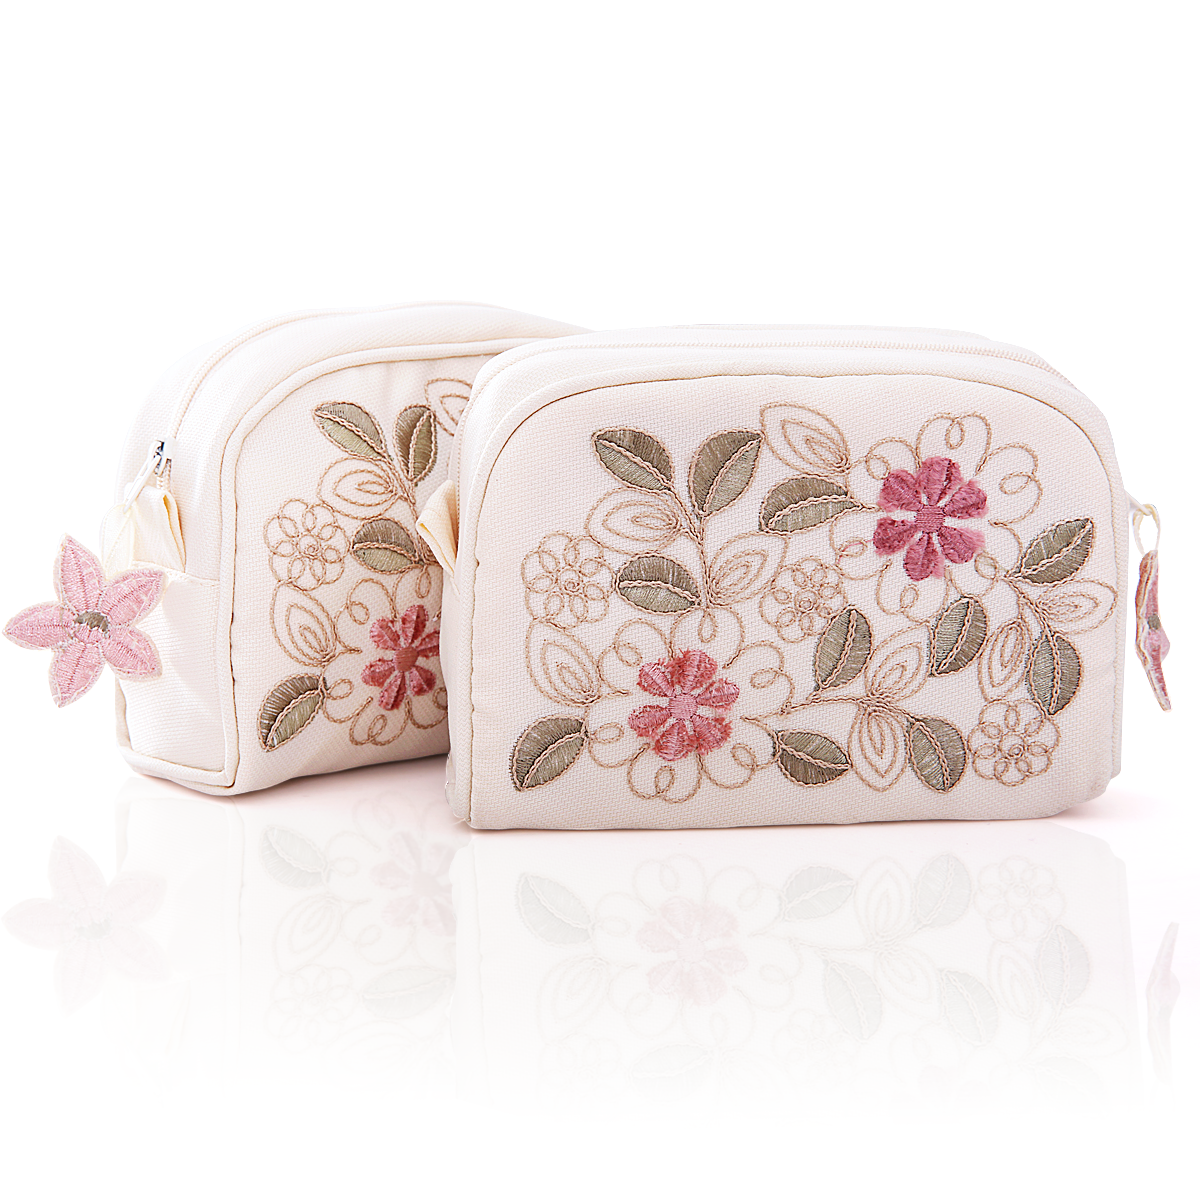 Travel wash bag cosmetic bag embroidery embroidery ms. korea cute small portable cosmetic storage bag handbag